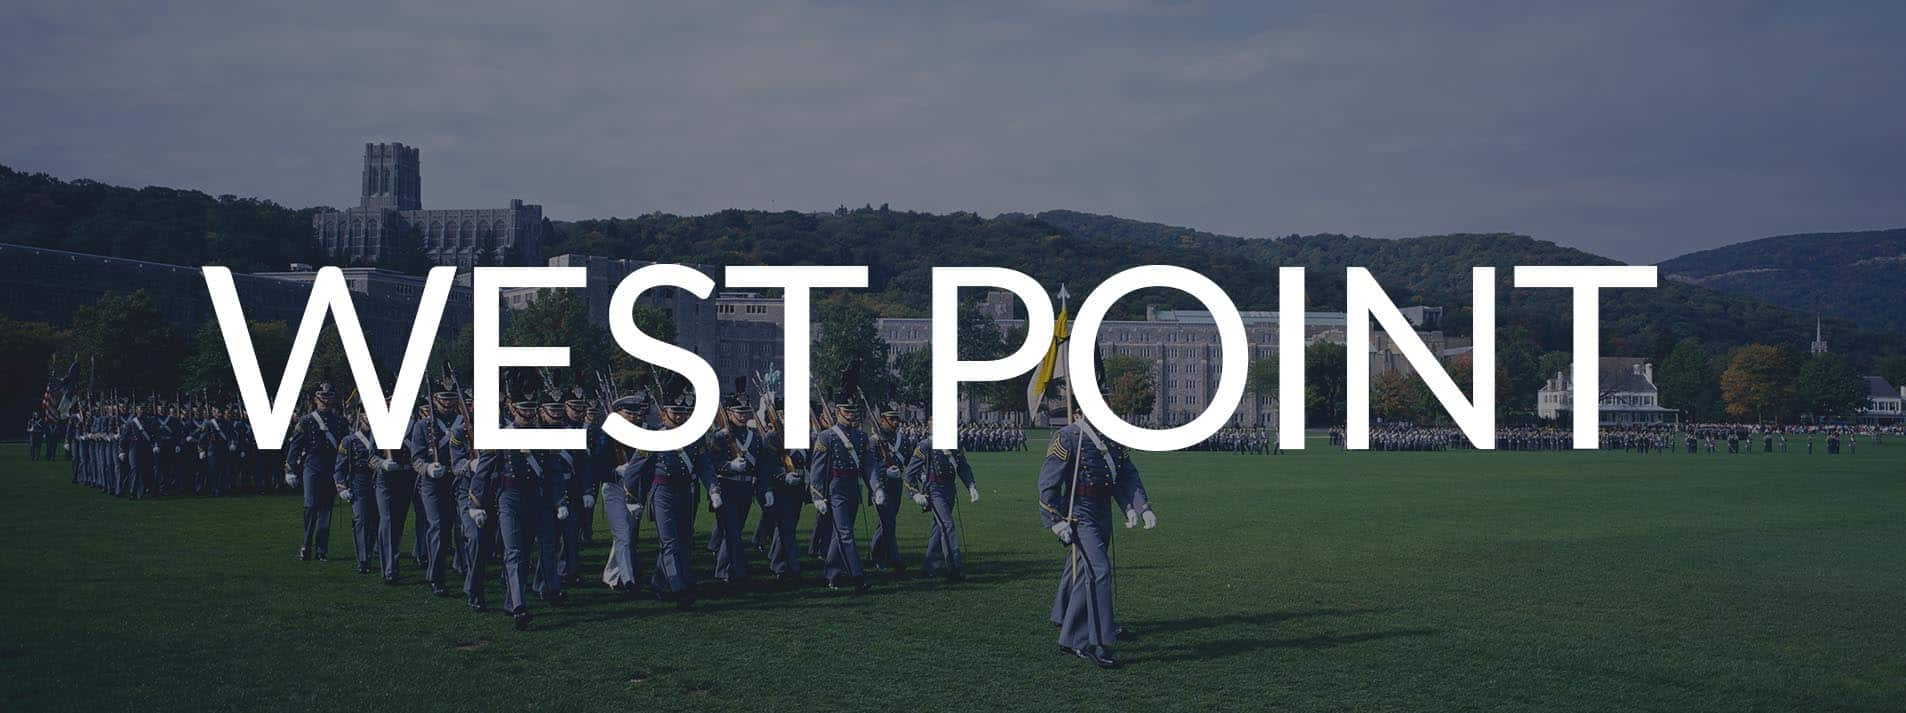 West Point page button